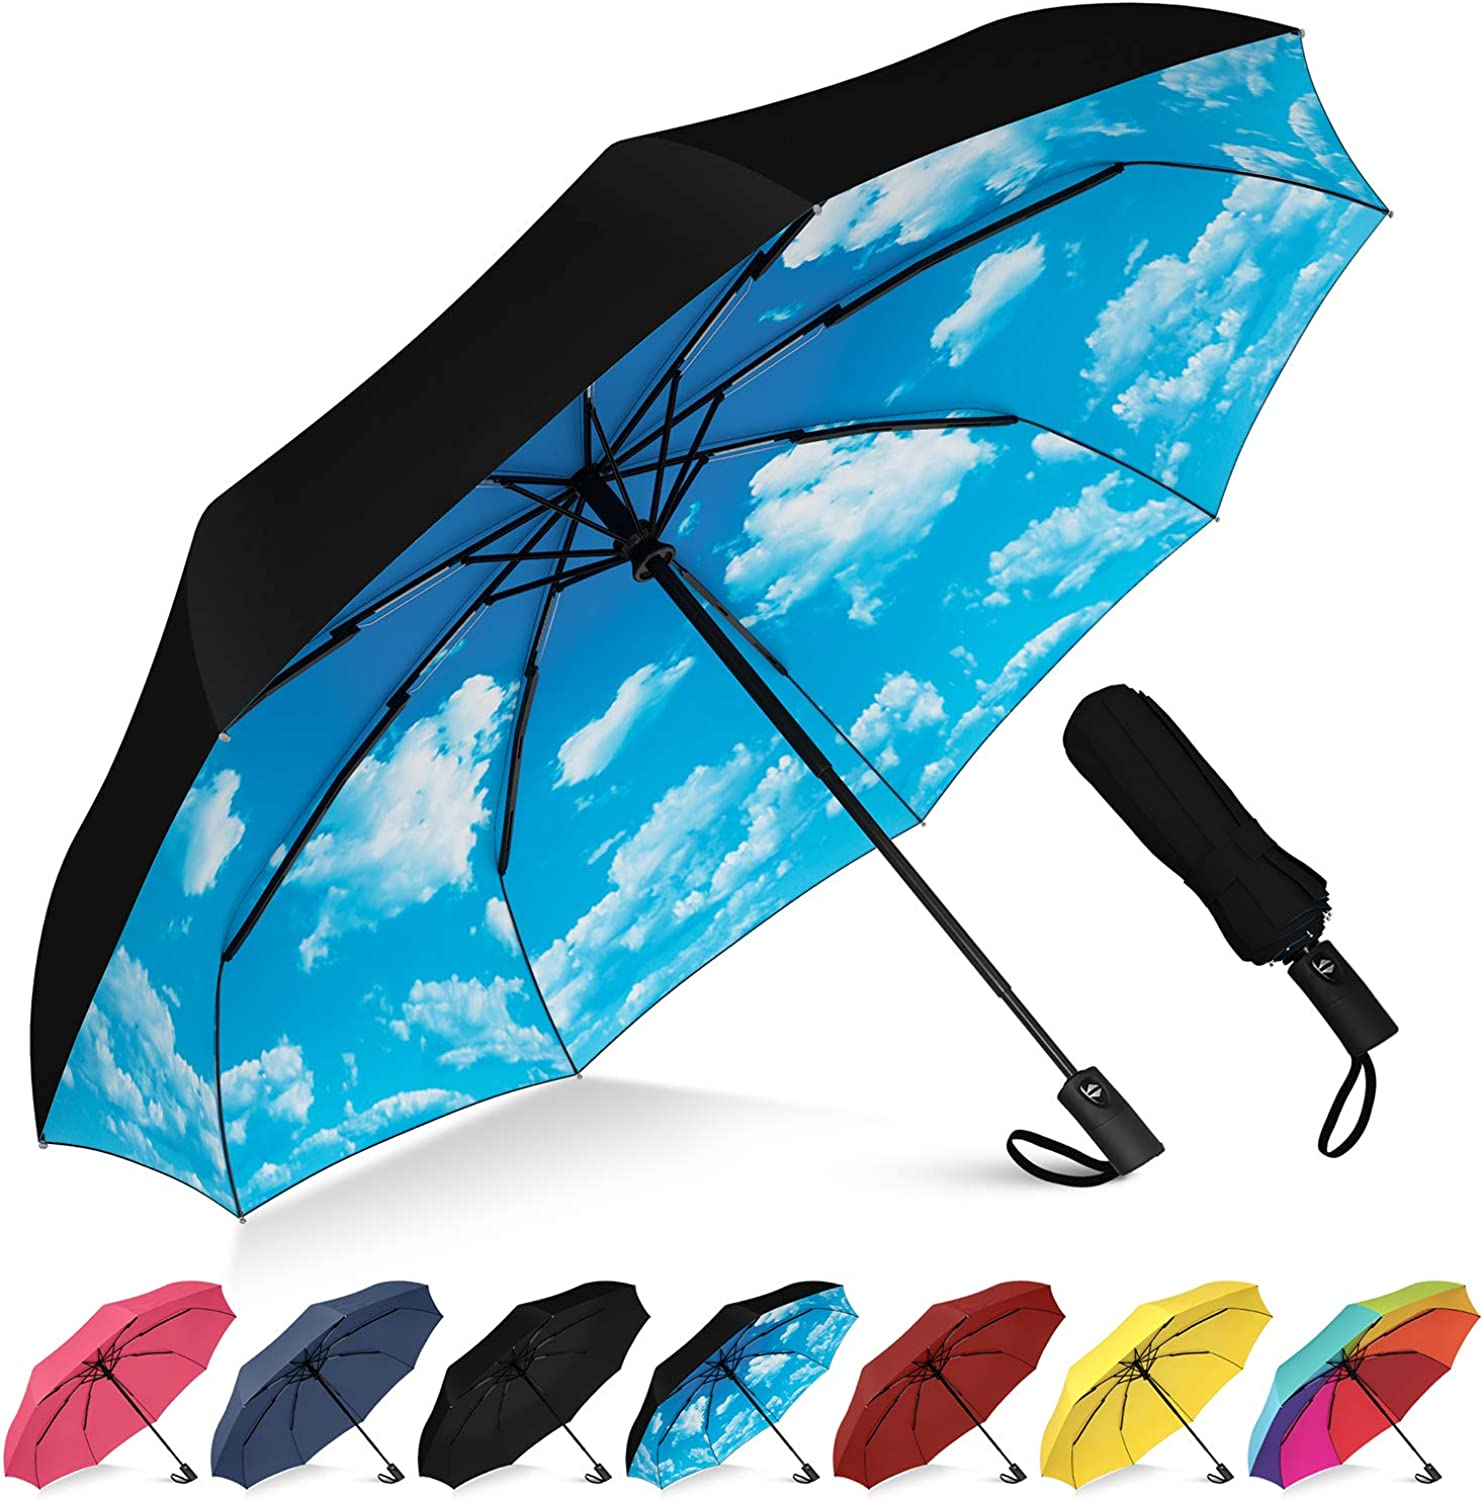 Turtle Outline Compact Travel Umbrella Windproof Reinforced Canopy Ergonomic Handle Auto Open//Close Multiple Colors